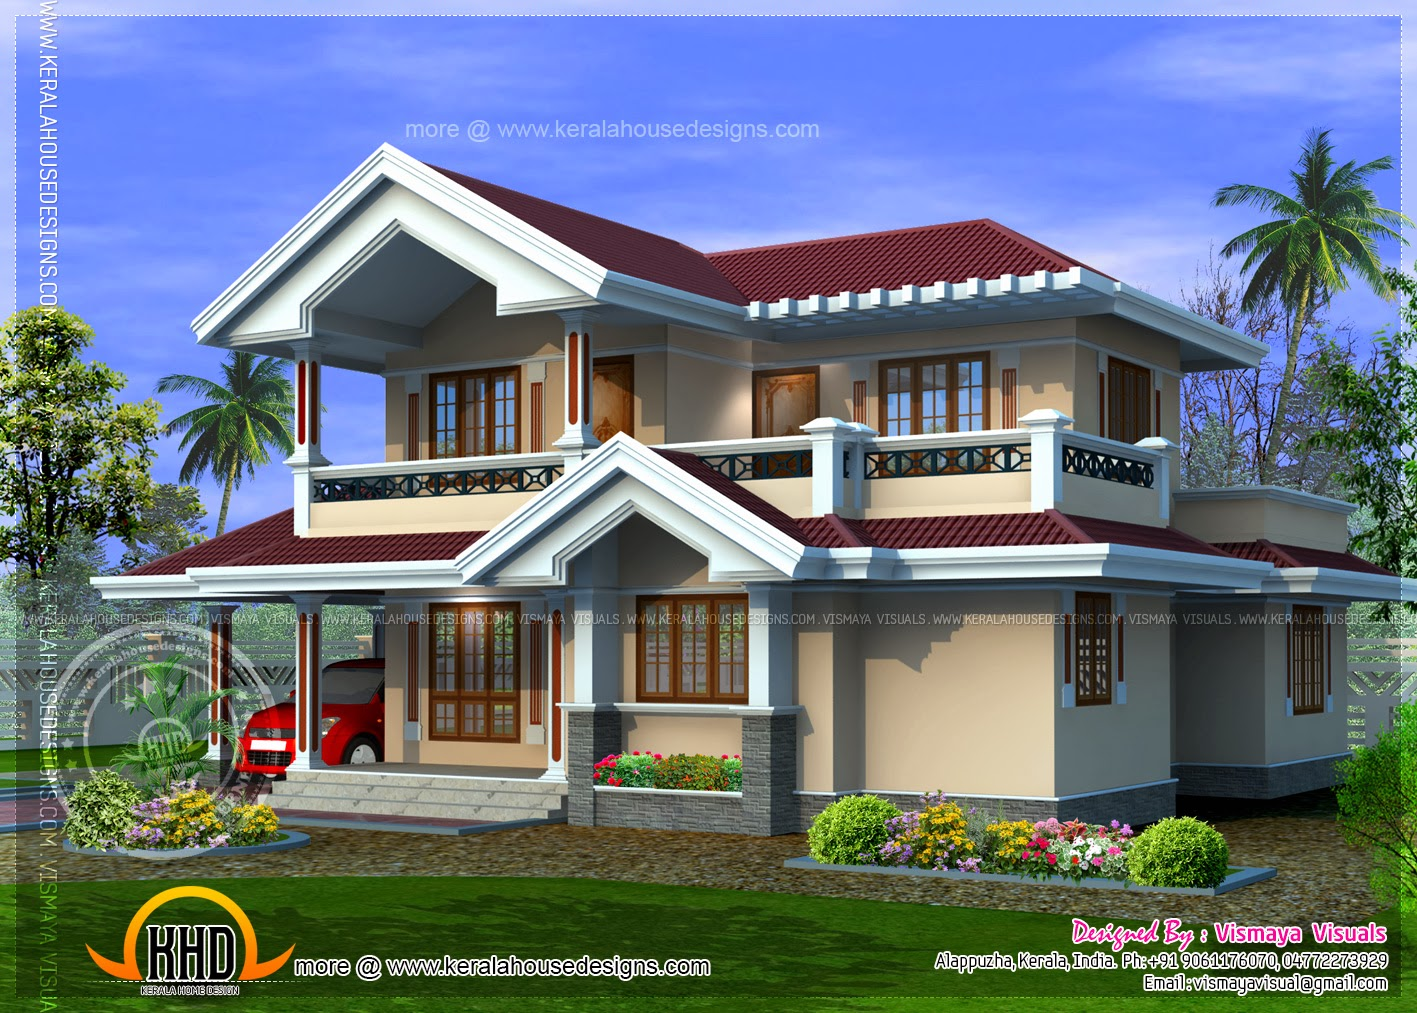 Kerala style villa plan in 1850 square feet home kerala for Villa plans in kerala